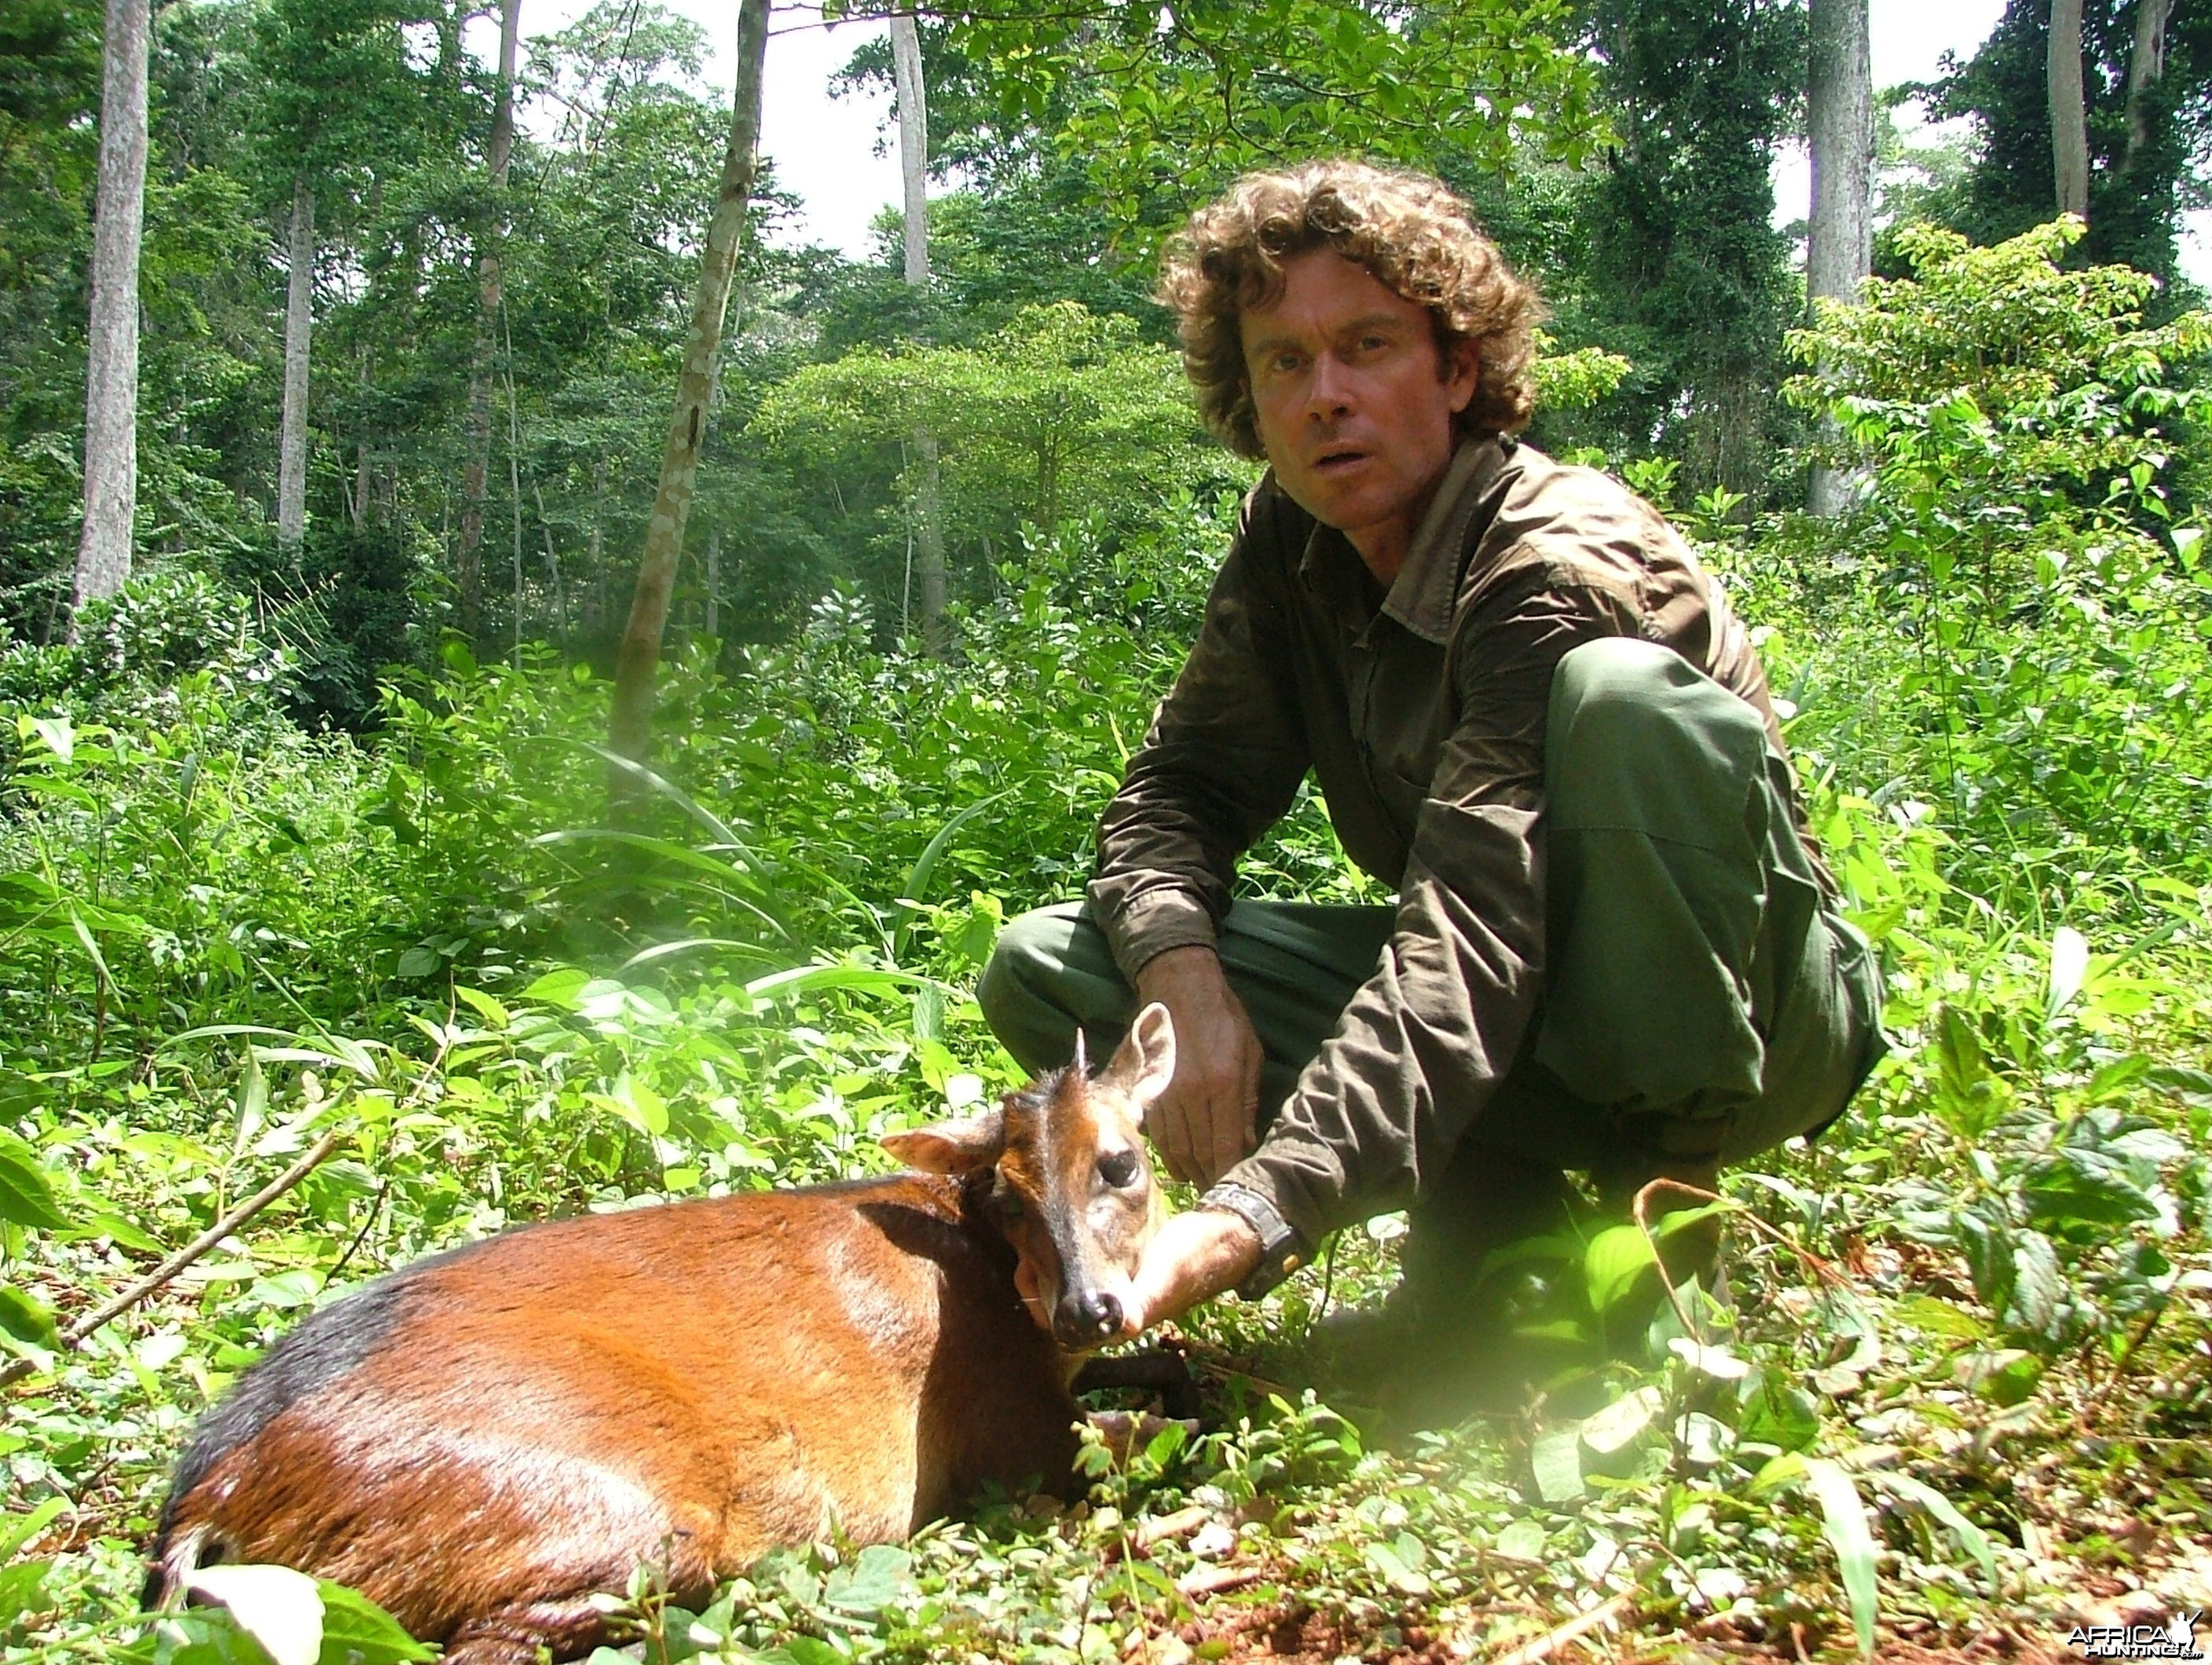 Red-Flanked Duiker hunted in Cameroon with Club Faune